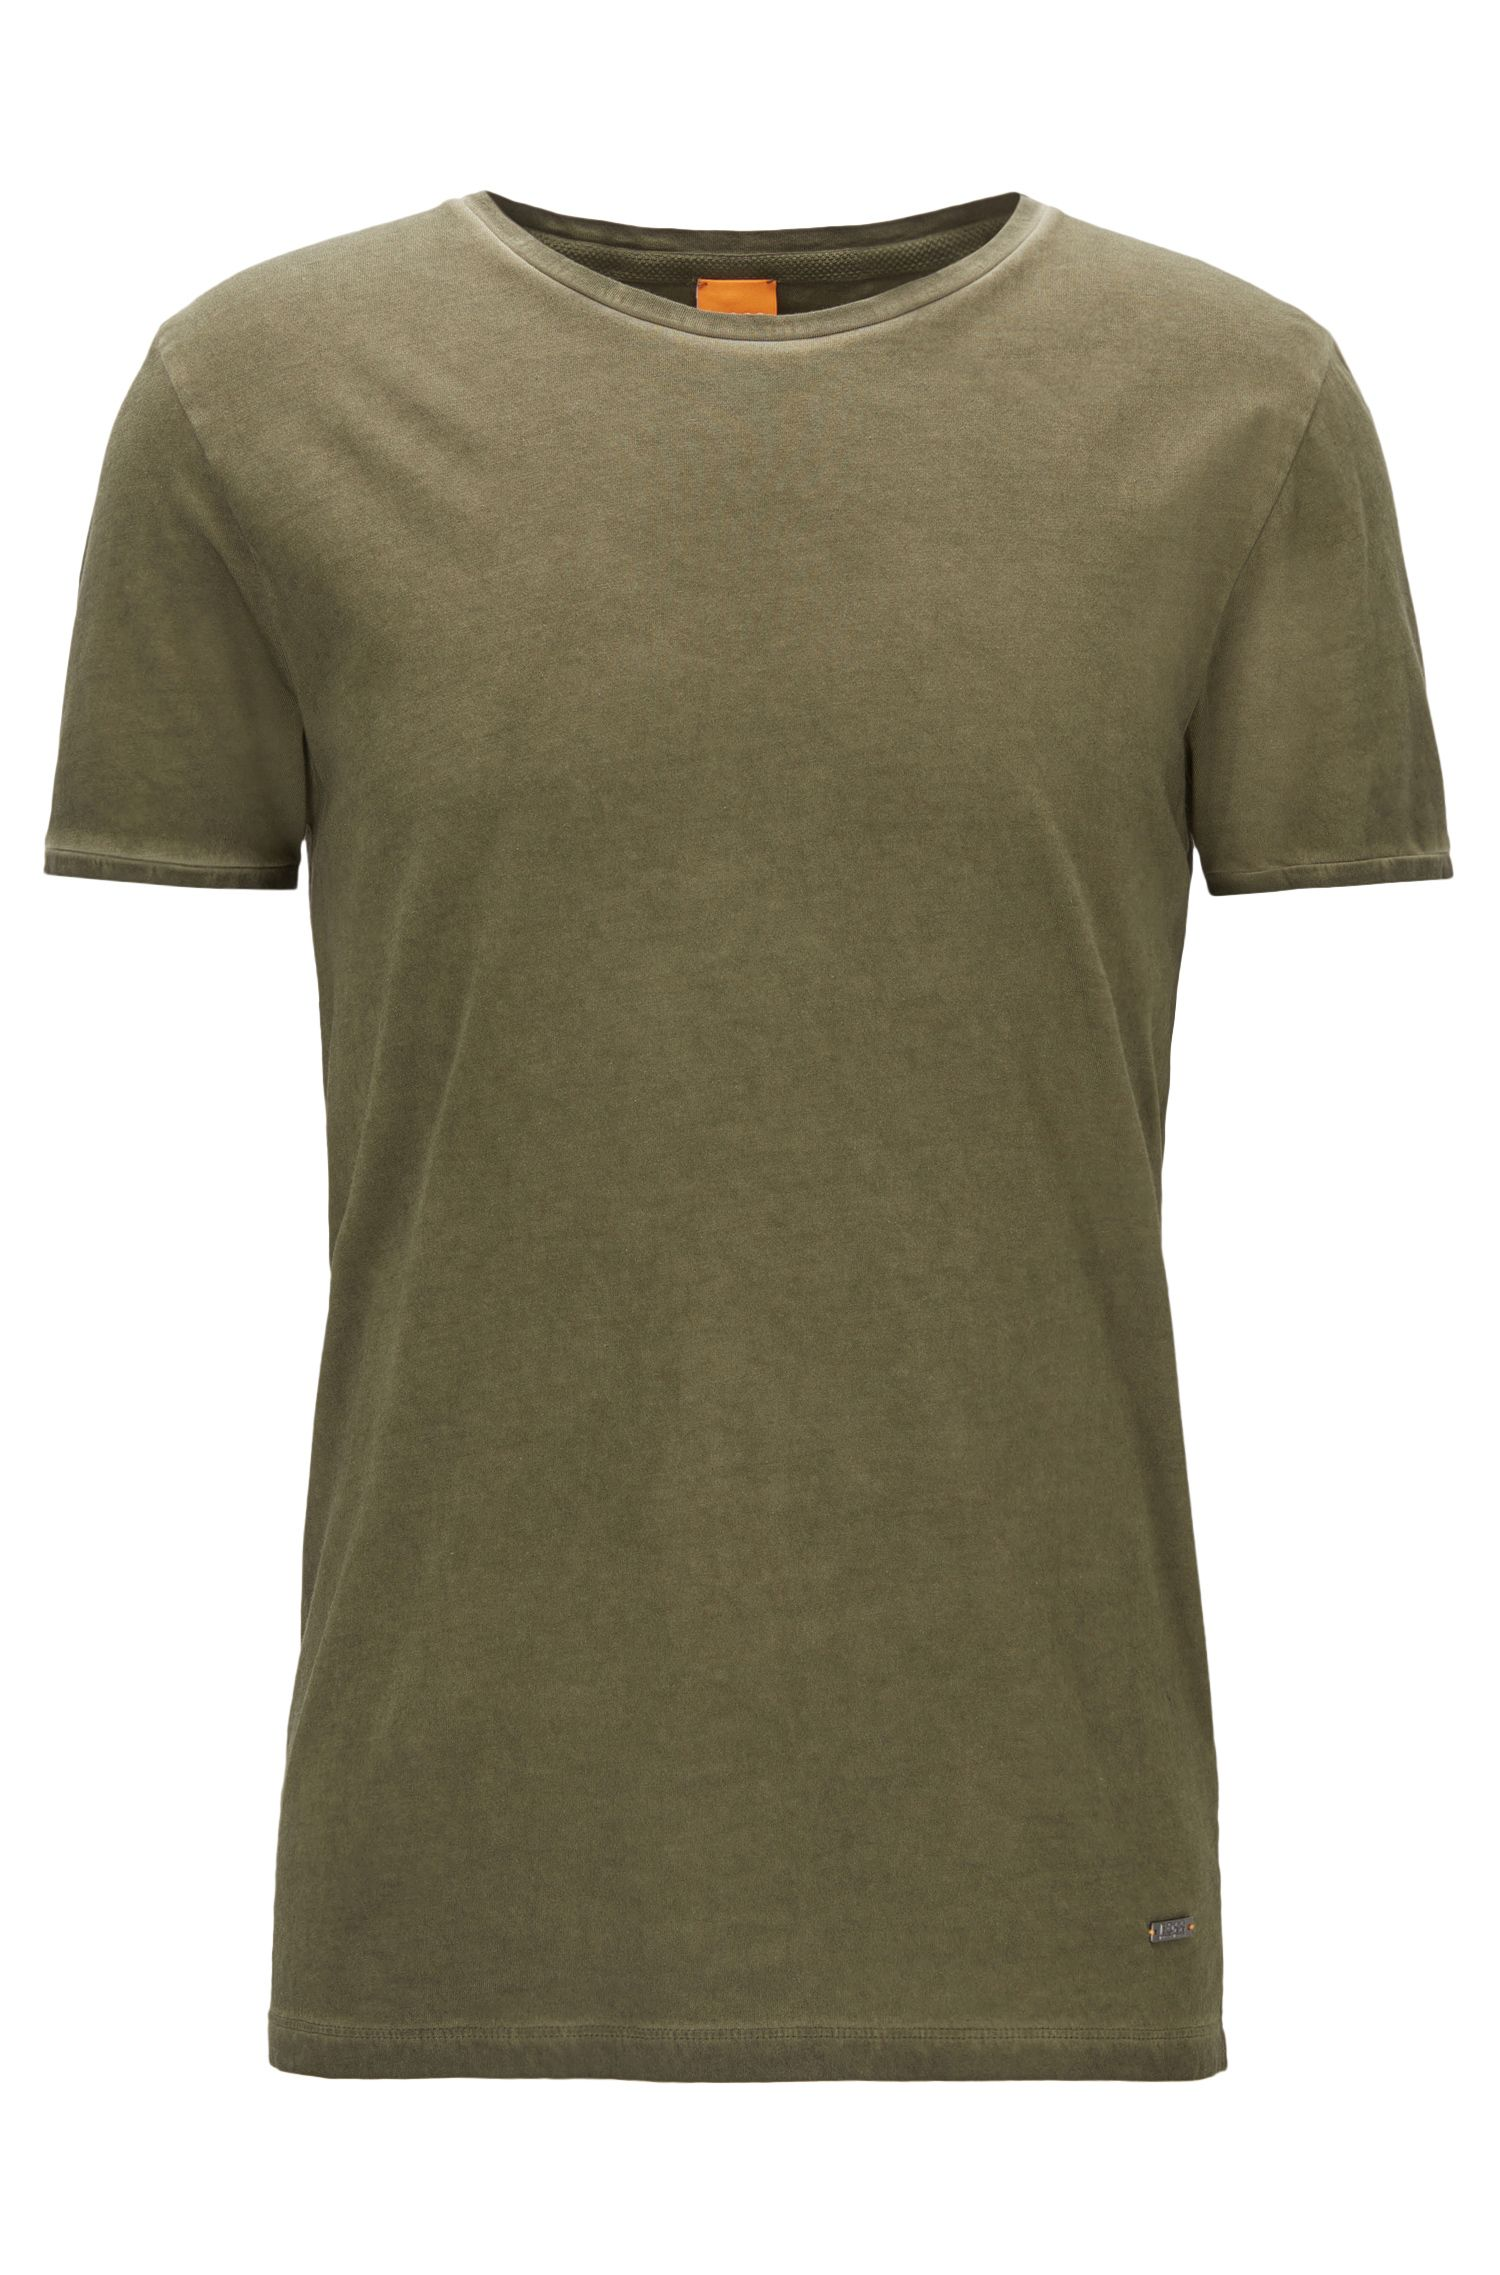 Regular-fit garment-dyed T-shirt in cotton, Khaki